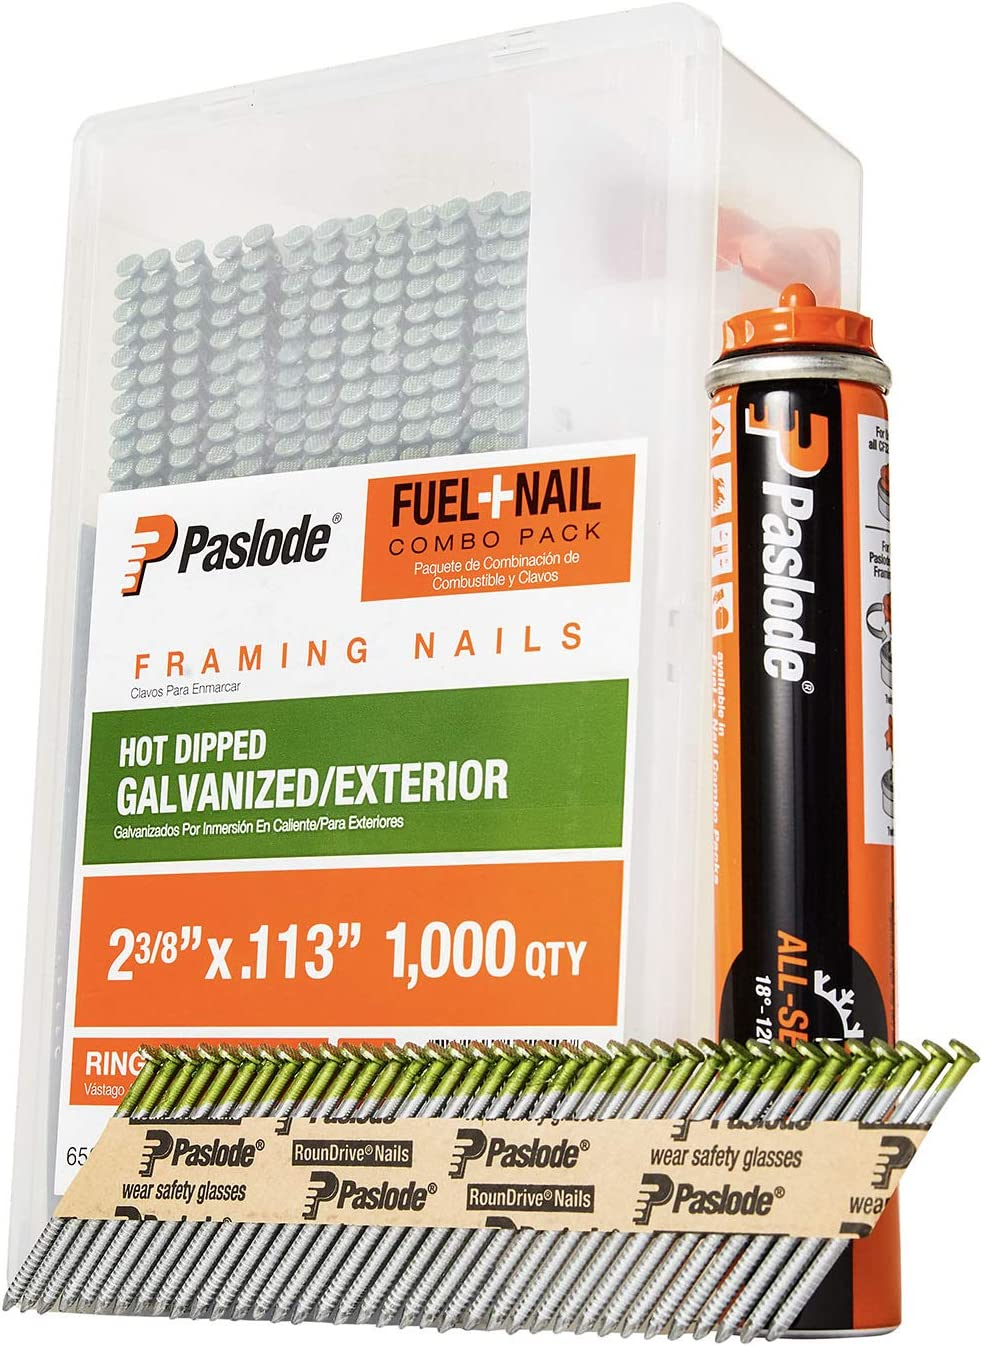 Paslode, Framing Nails and Fuel Pack, 650526, 2 3/8 inch x .113